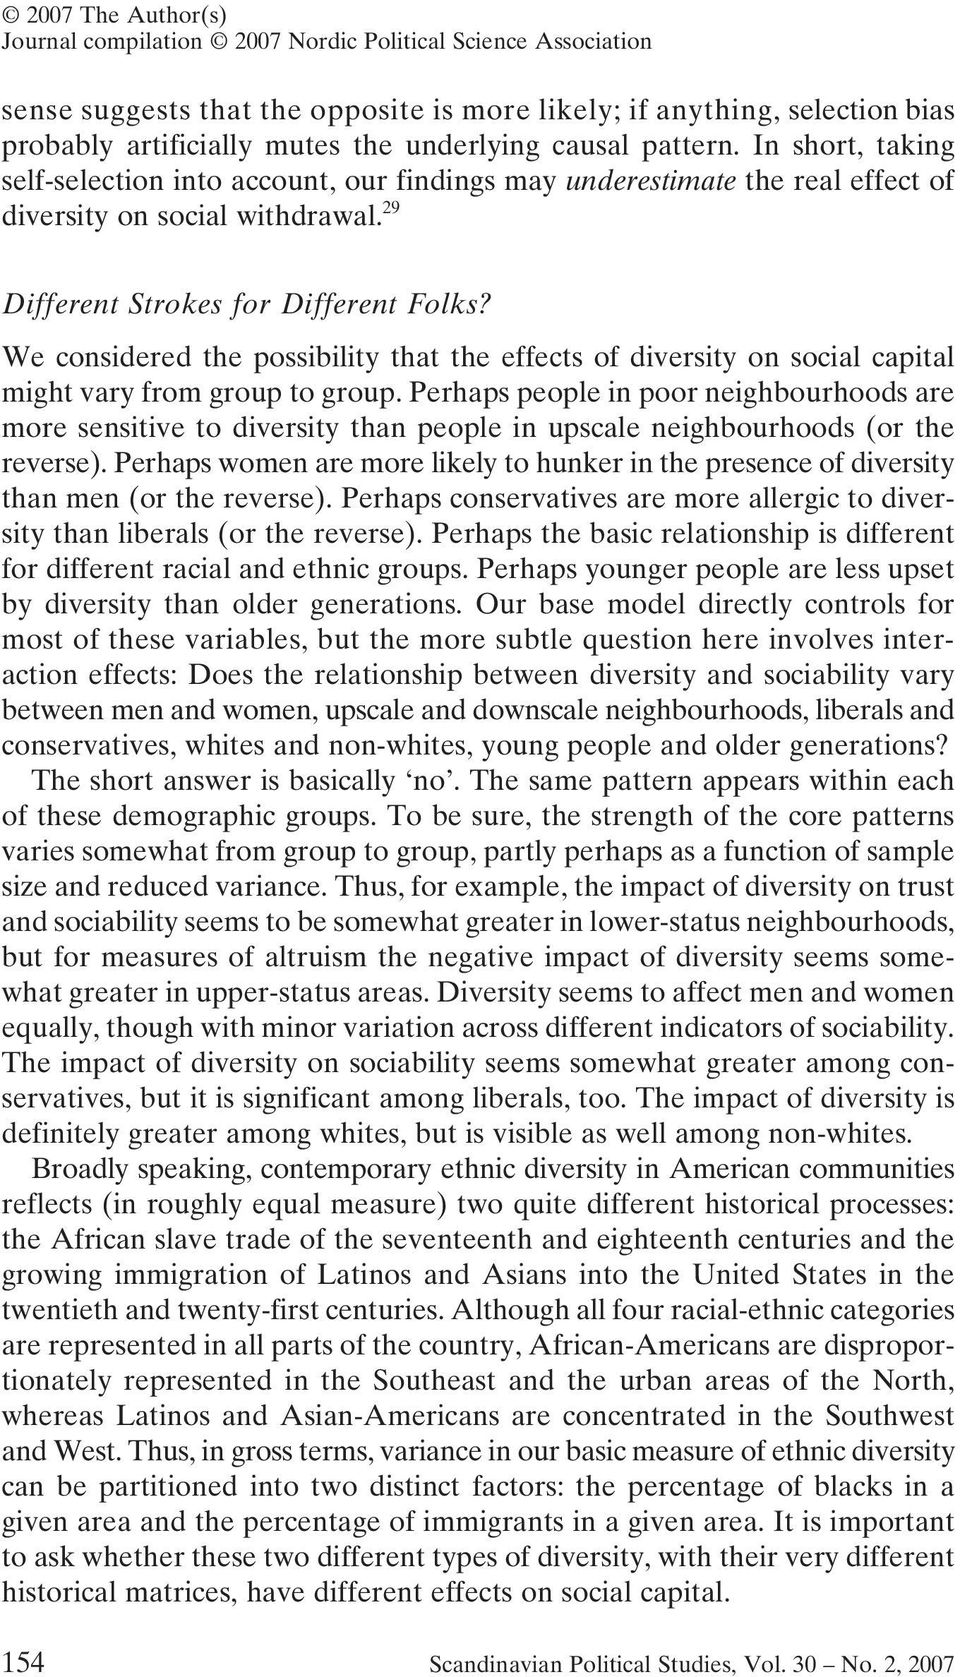 We considered the possibility that the effects of diversity on social capital might vary from group to group.